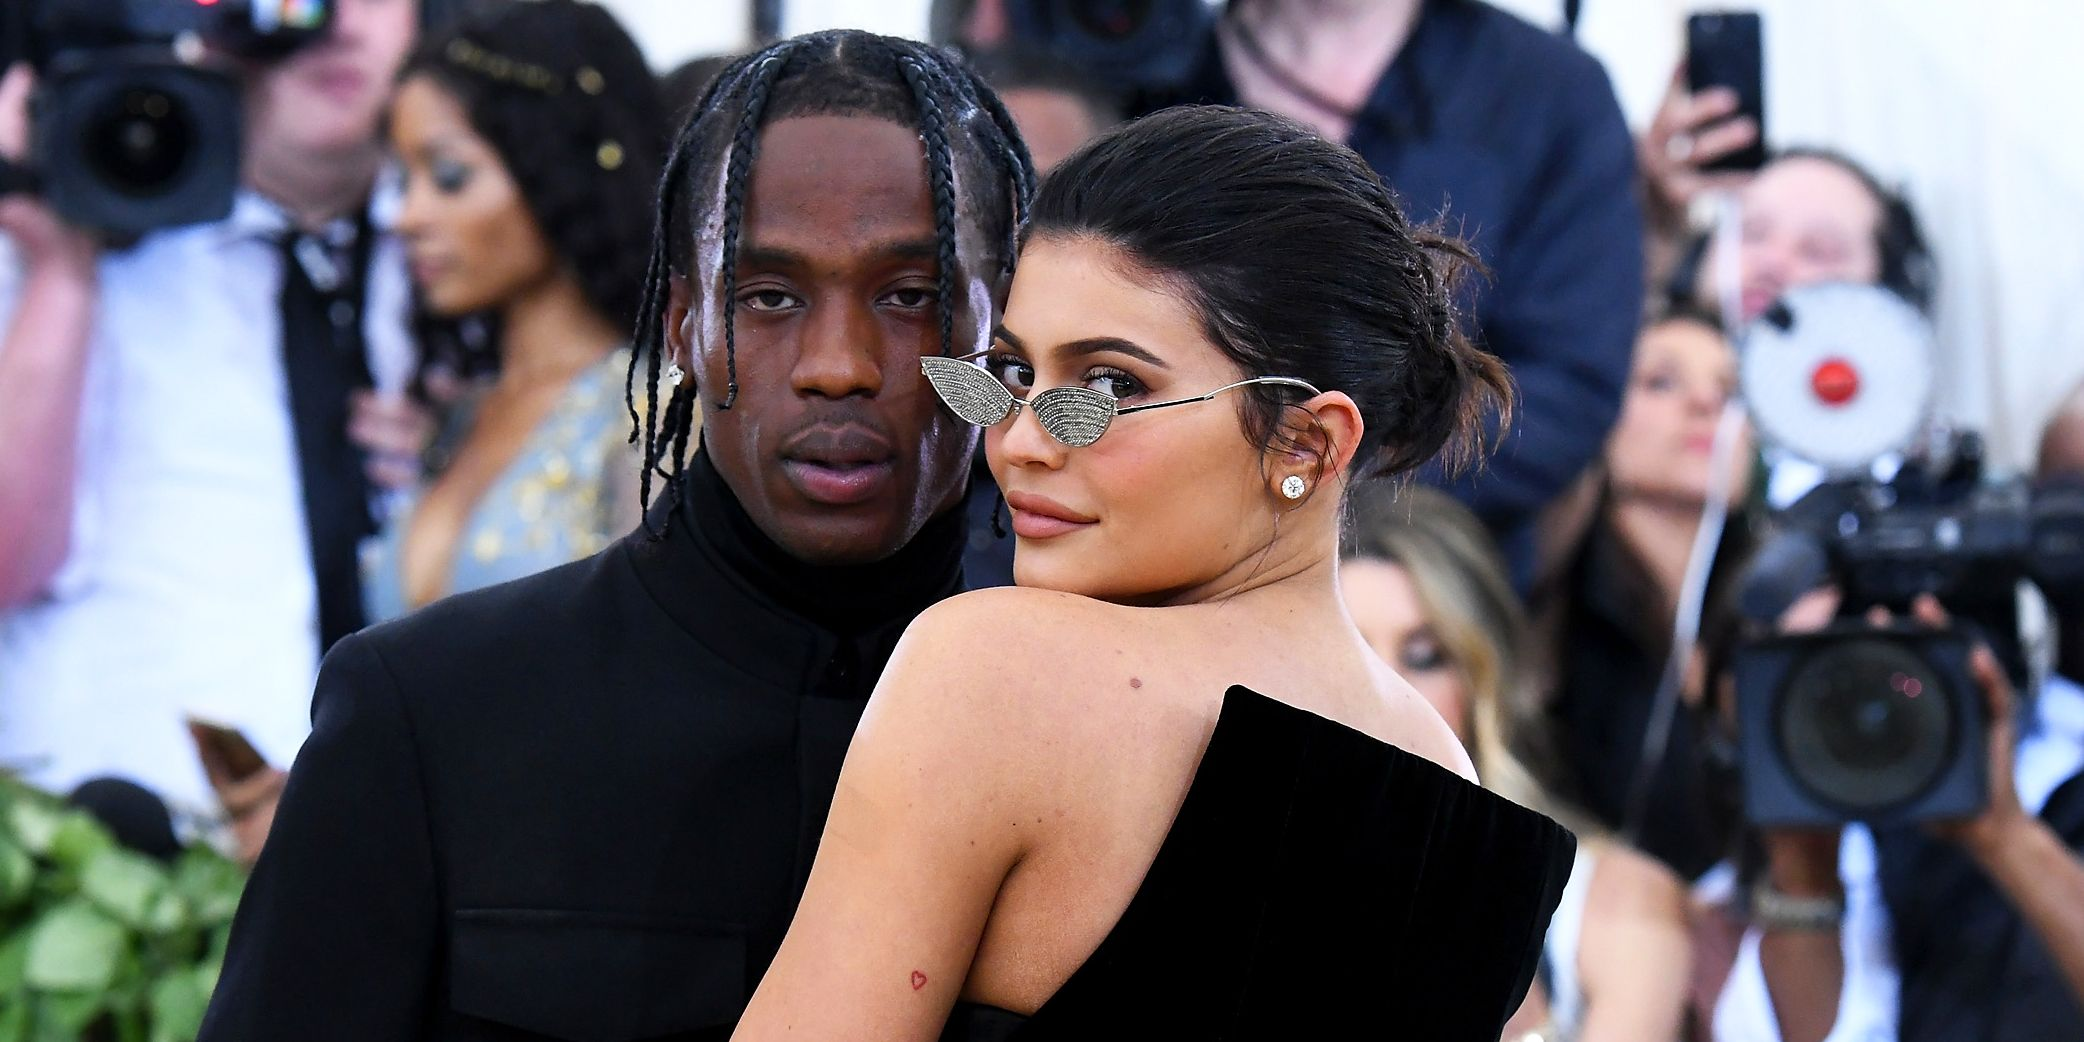 Well, We Finally Know What Kylie Jenner and Travis Scott Got Matching Tattoos Of